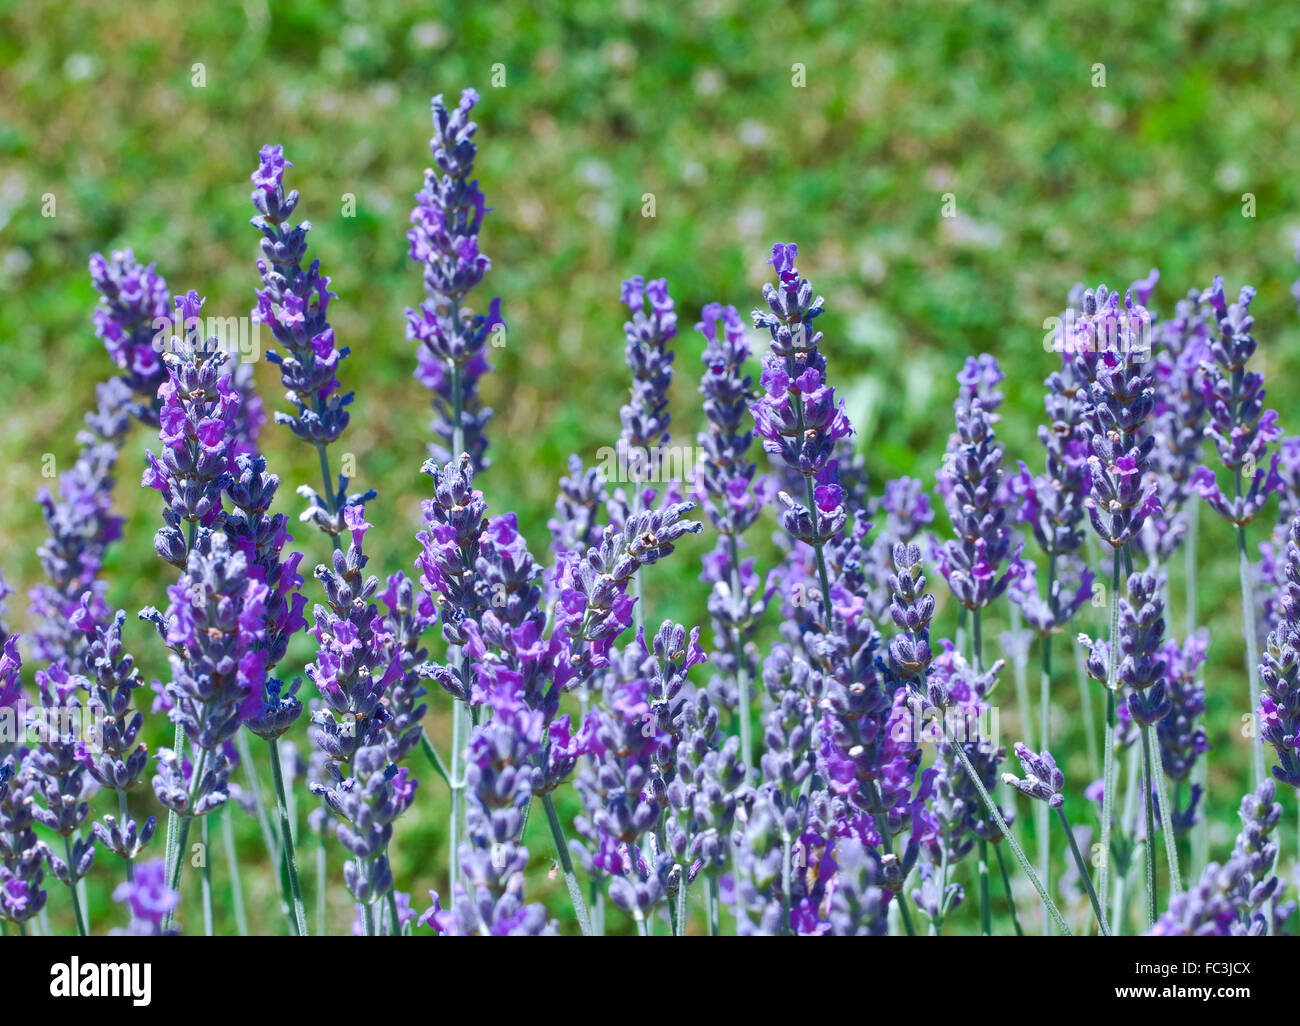 Bloom of Fragrant Lilac Lavender Flowers Stock Photo